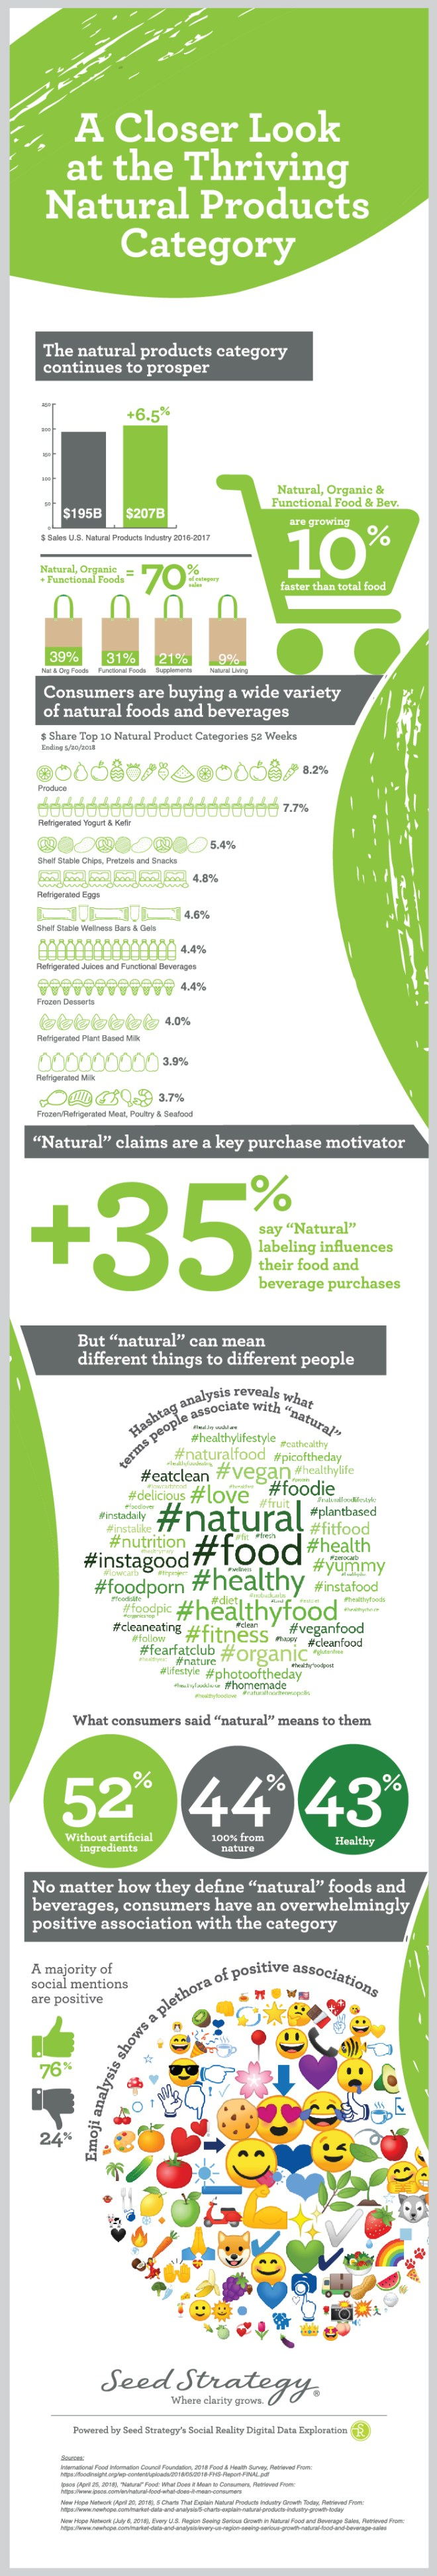 Infographic with insights about the natural products category